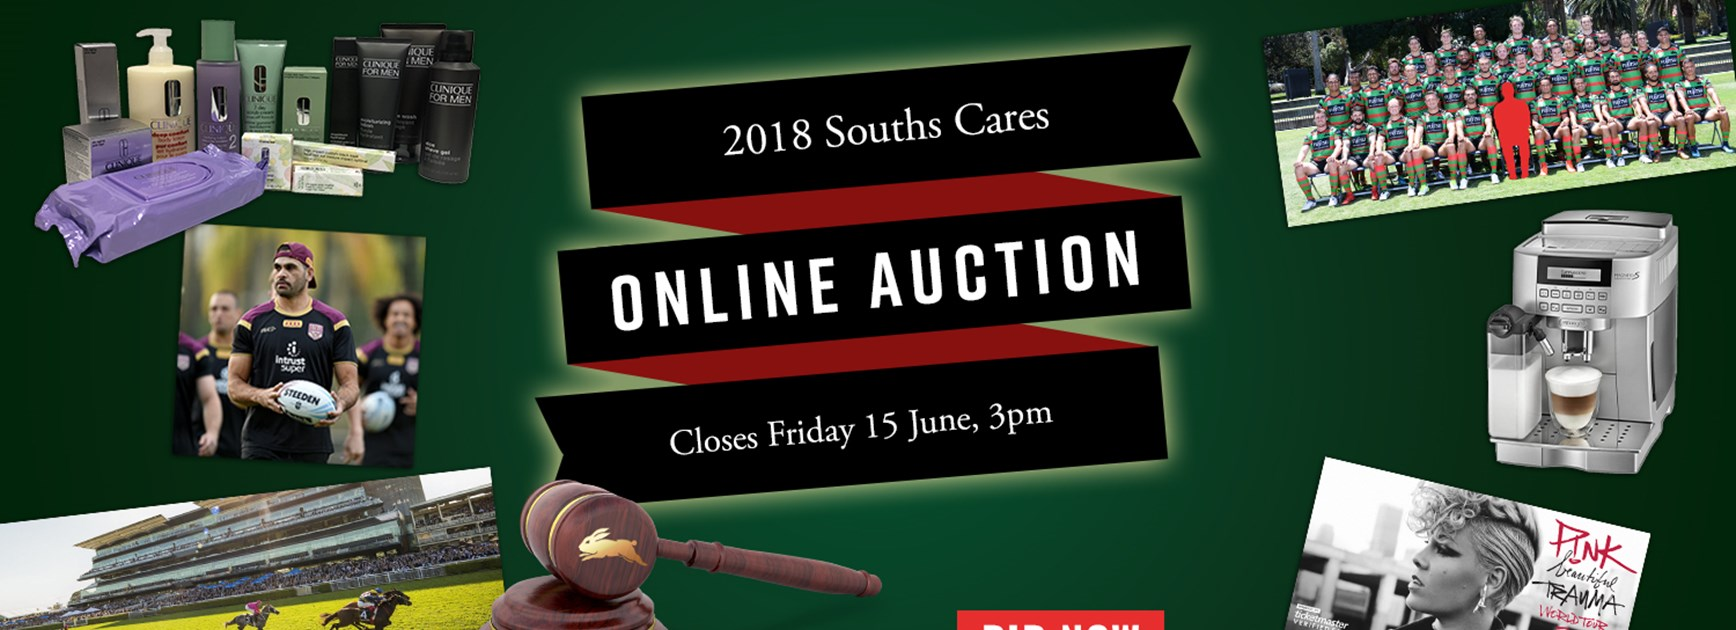 Act now! The Souths Cares auction is live